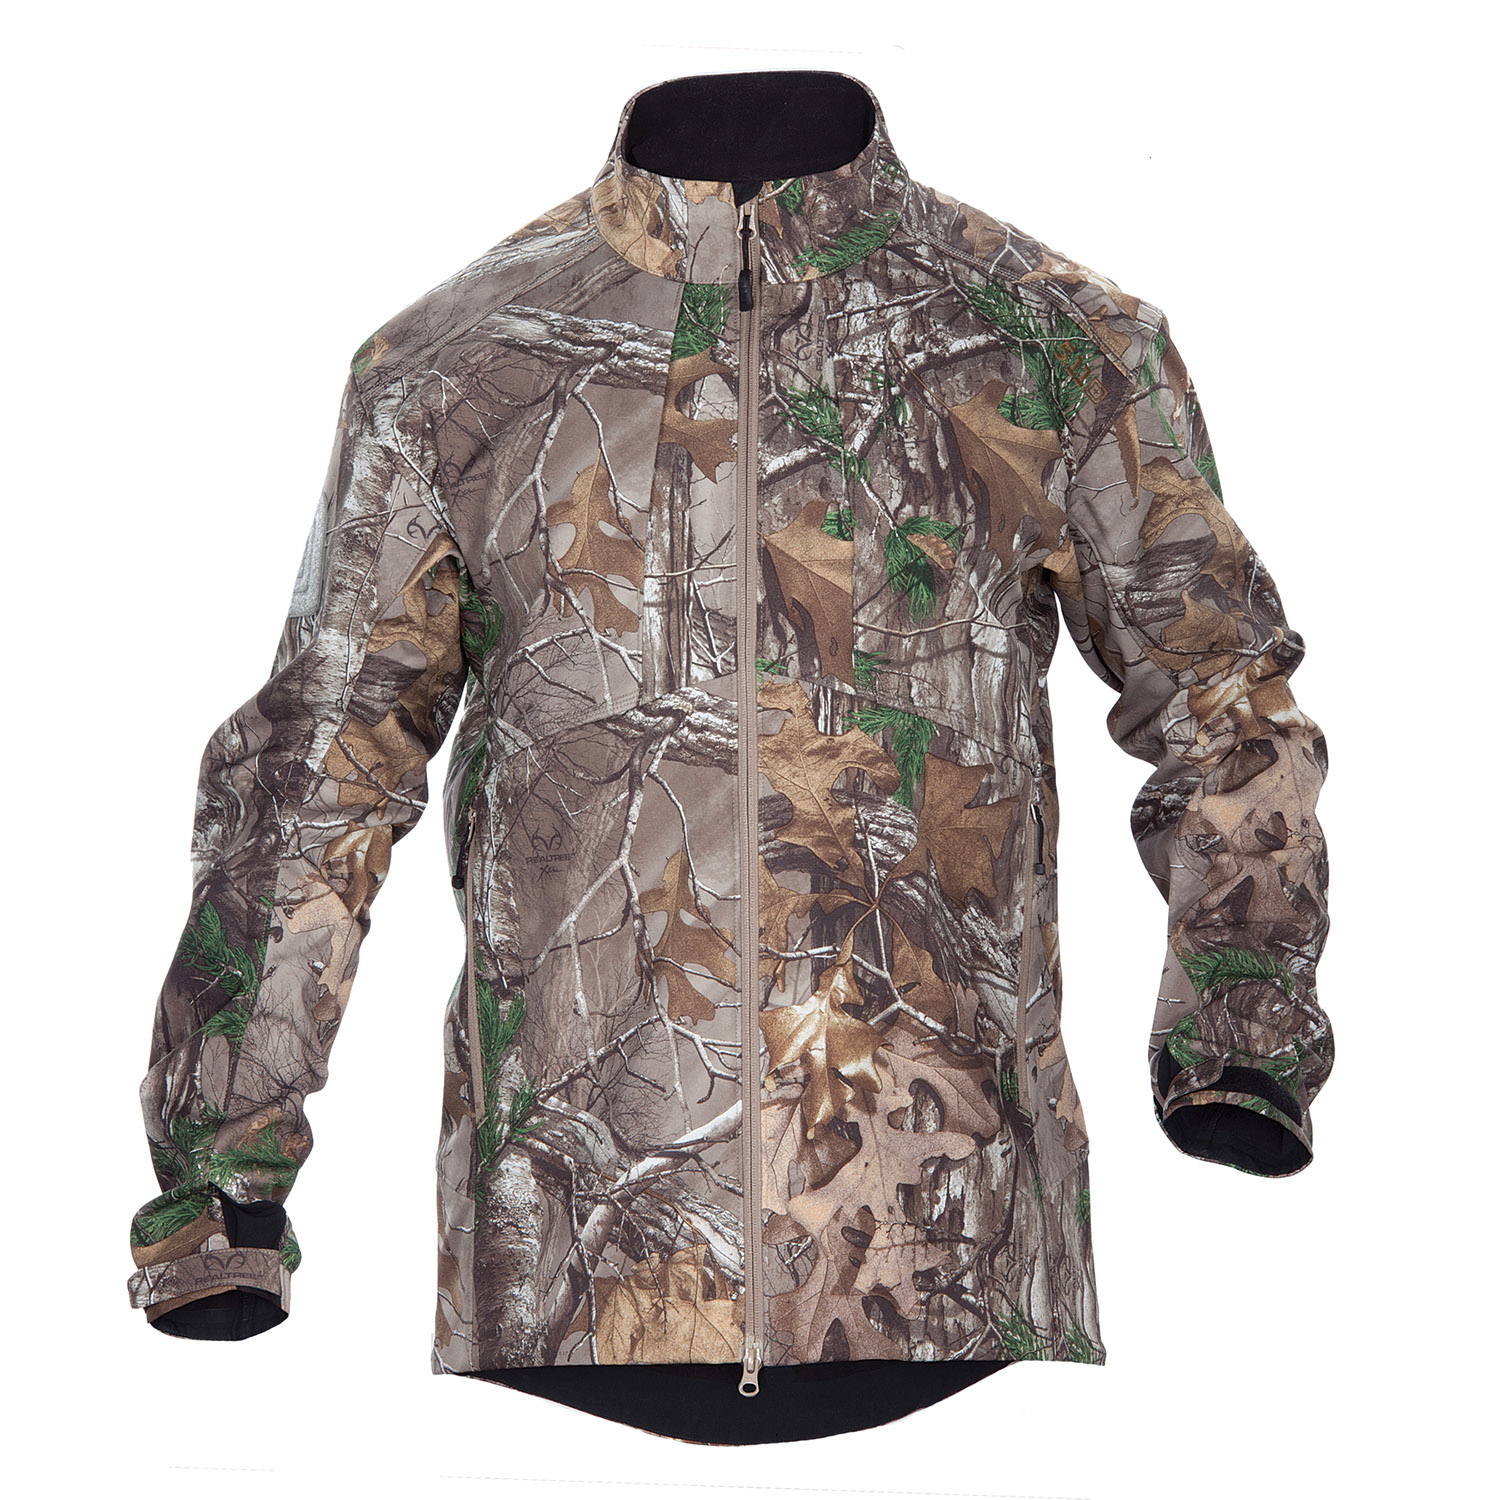 5.11 Tactical Realtree Sierra Softshell